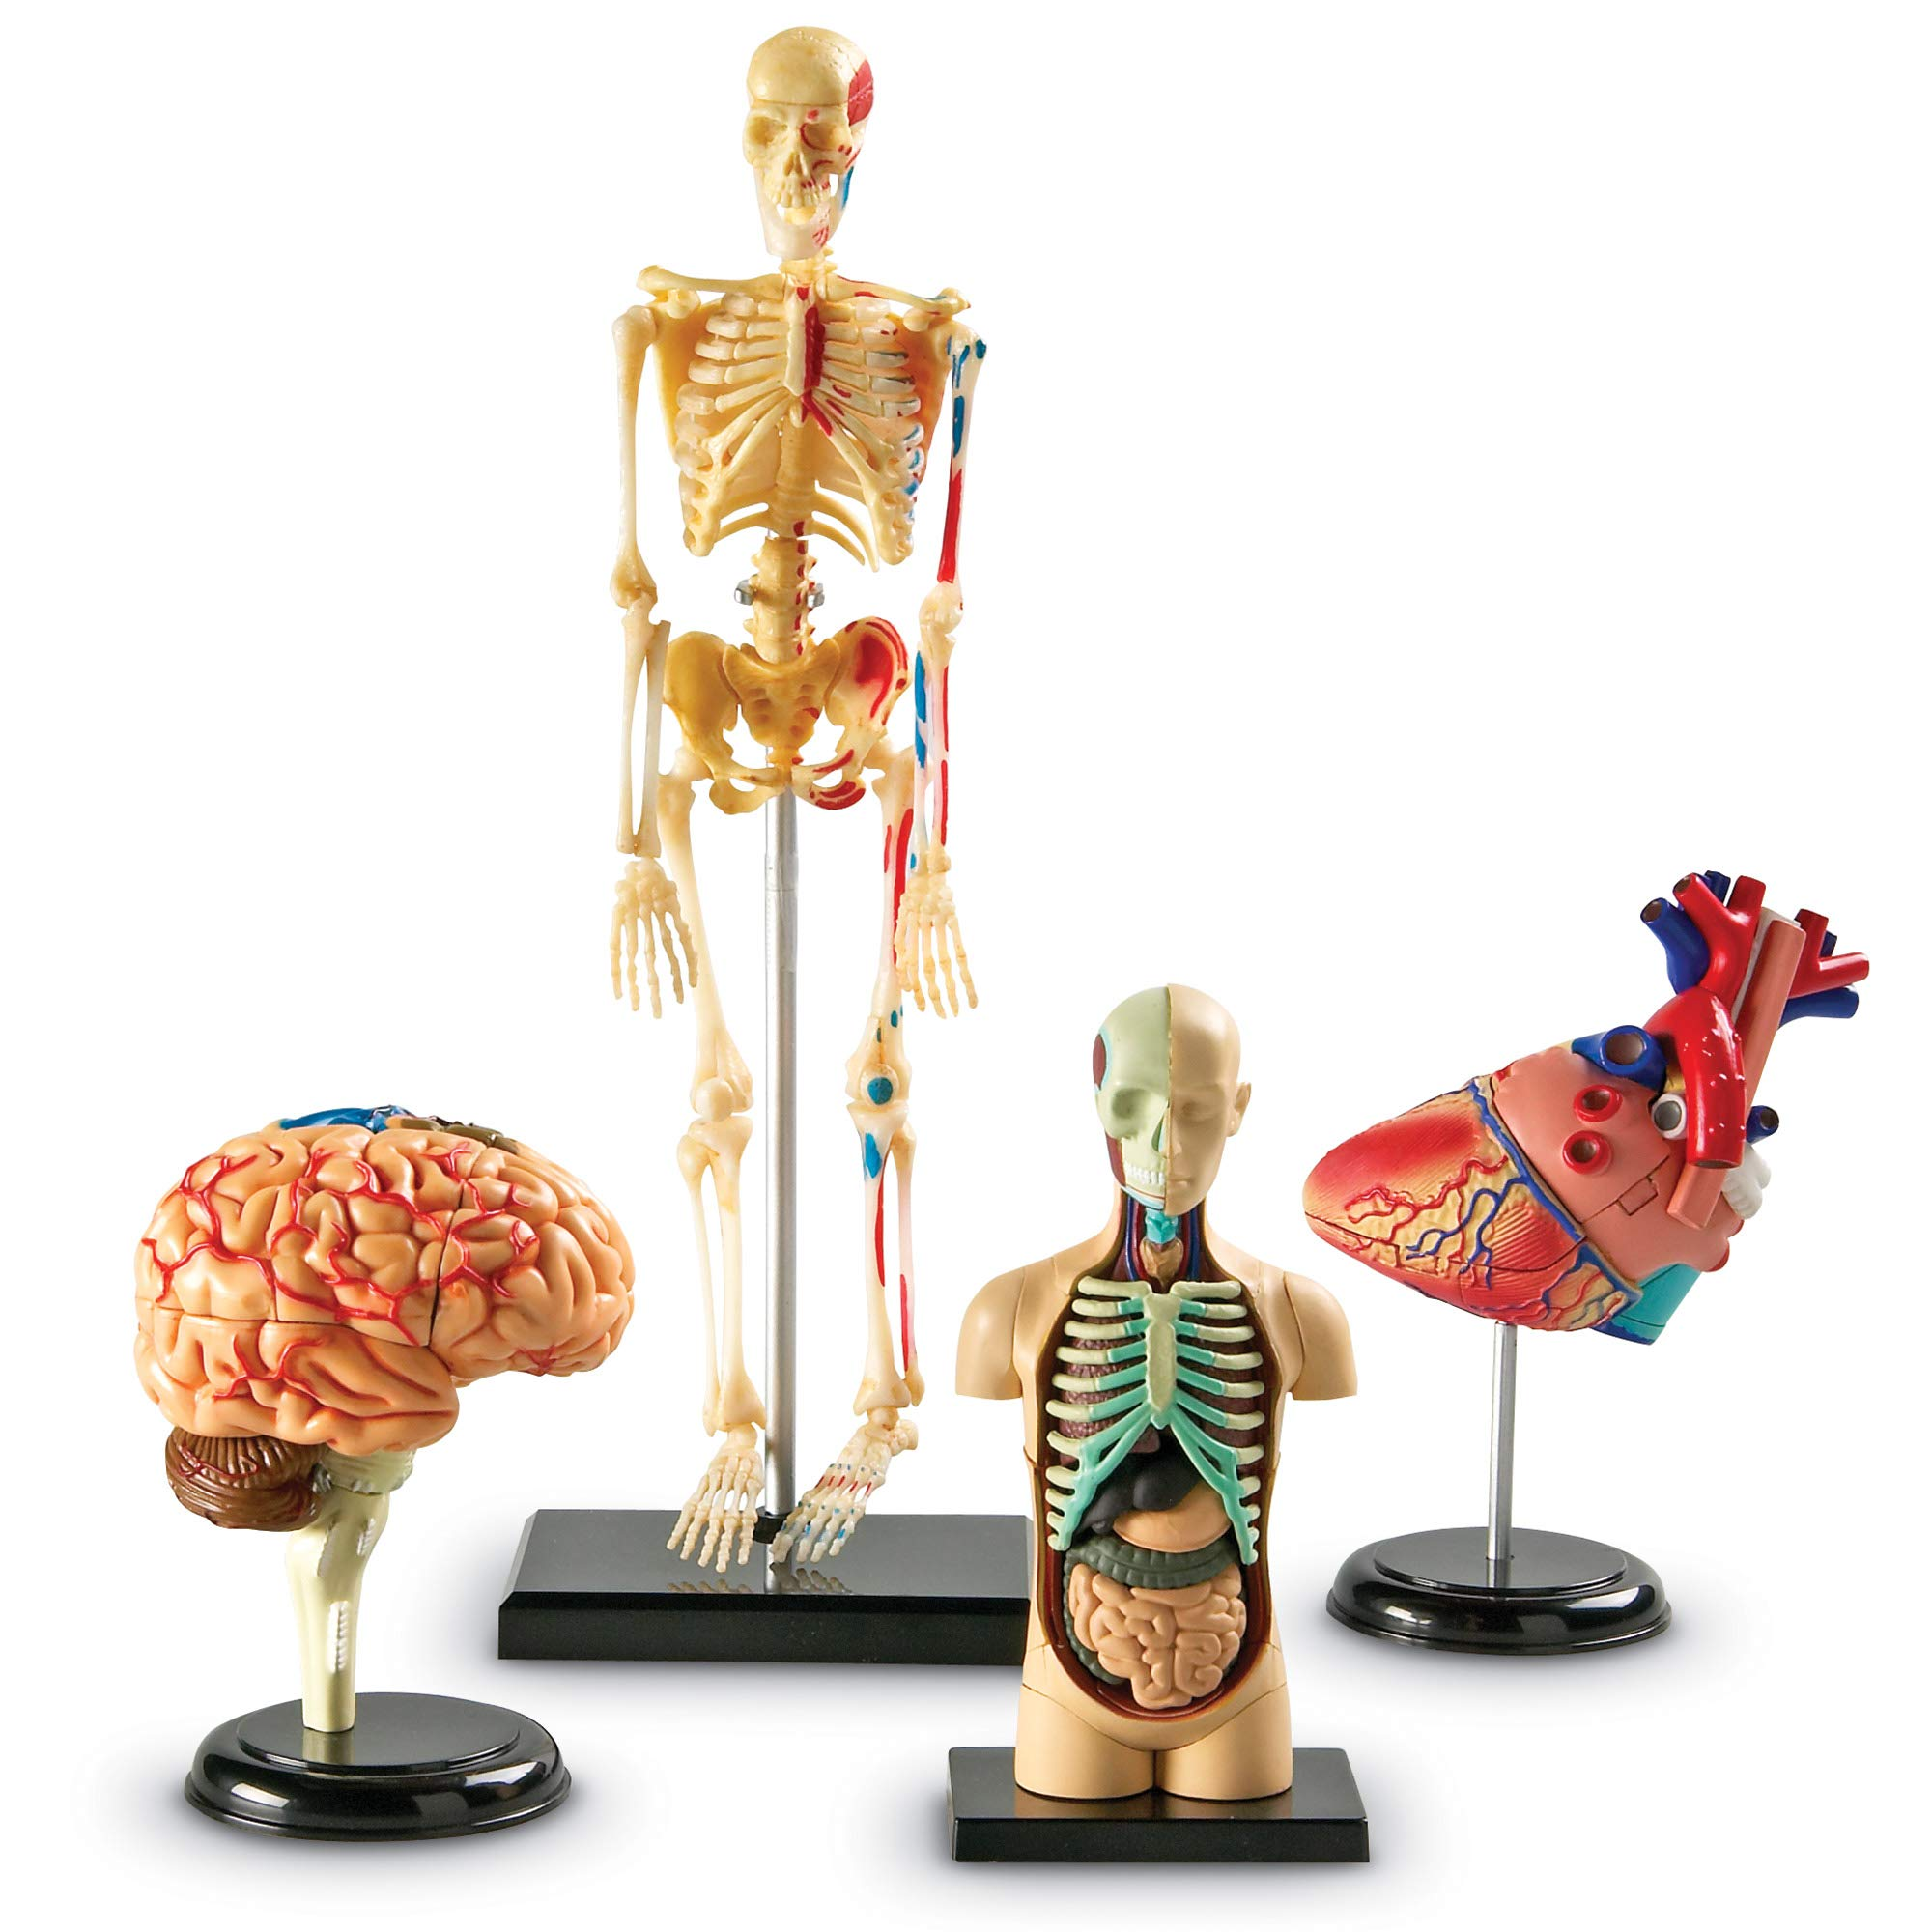 Learning Resources Anatomy Models Bundle Set, Brain, Body, Heart, Skeleton, Classroom Demonstration Tools, Teacher Accessories, Grades 3+, Ages 5+ by Learning Resources